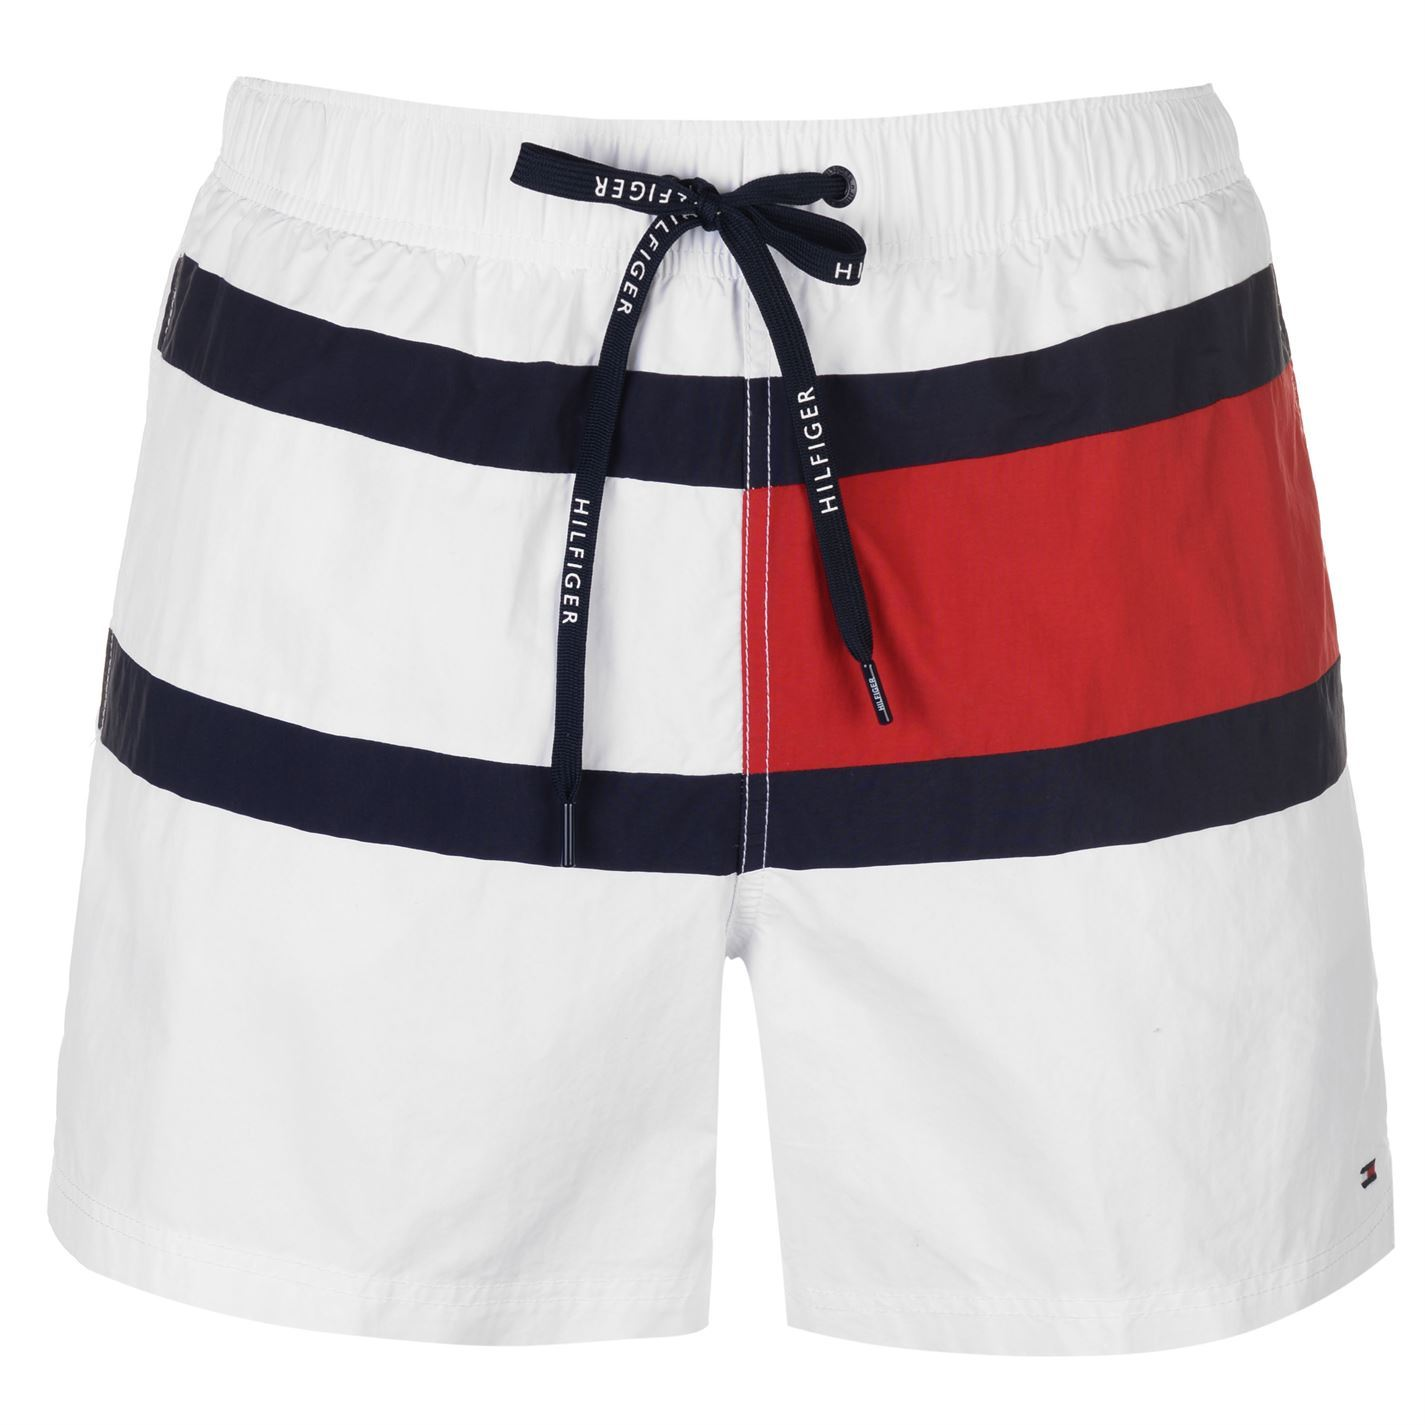 c2f7afe21c Details about Mens Tommy Hilfiger Drawstring Swim Shorts Lightweight New